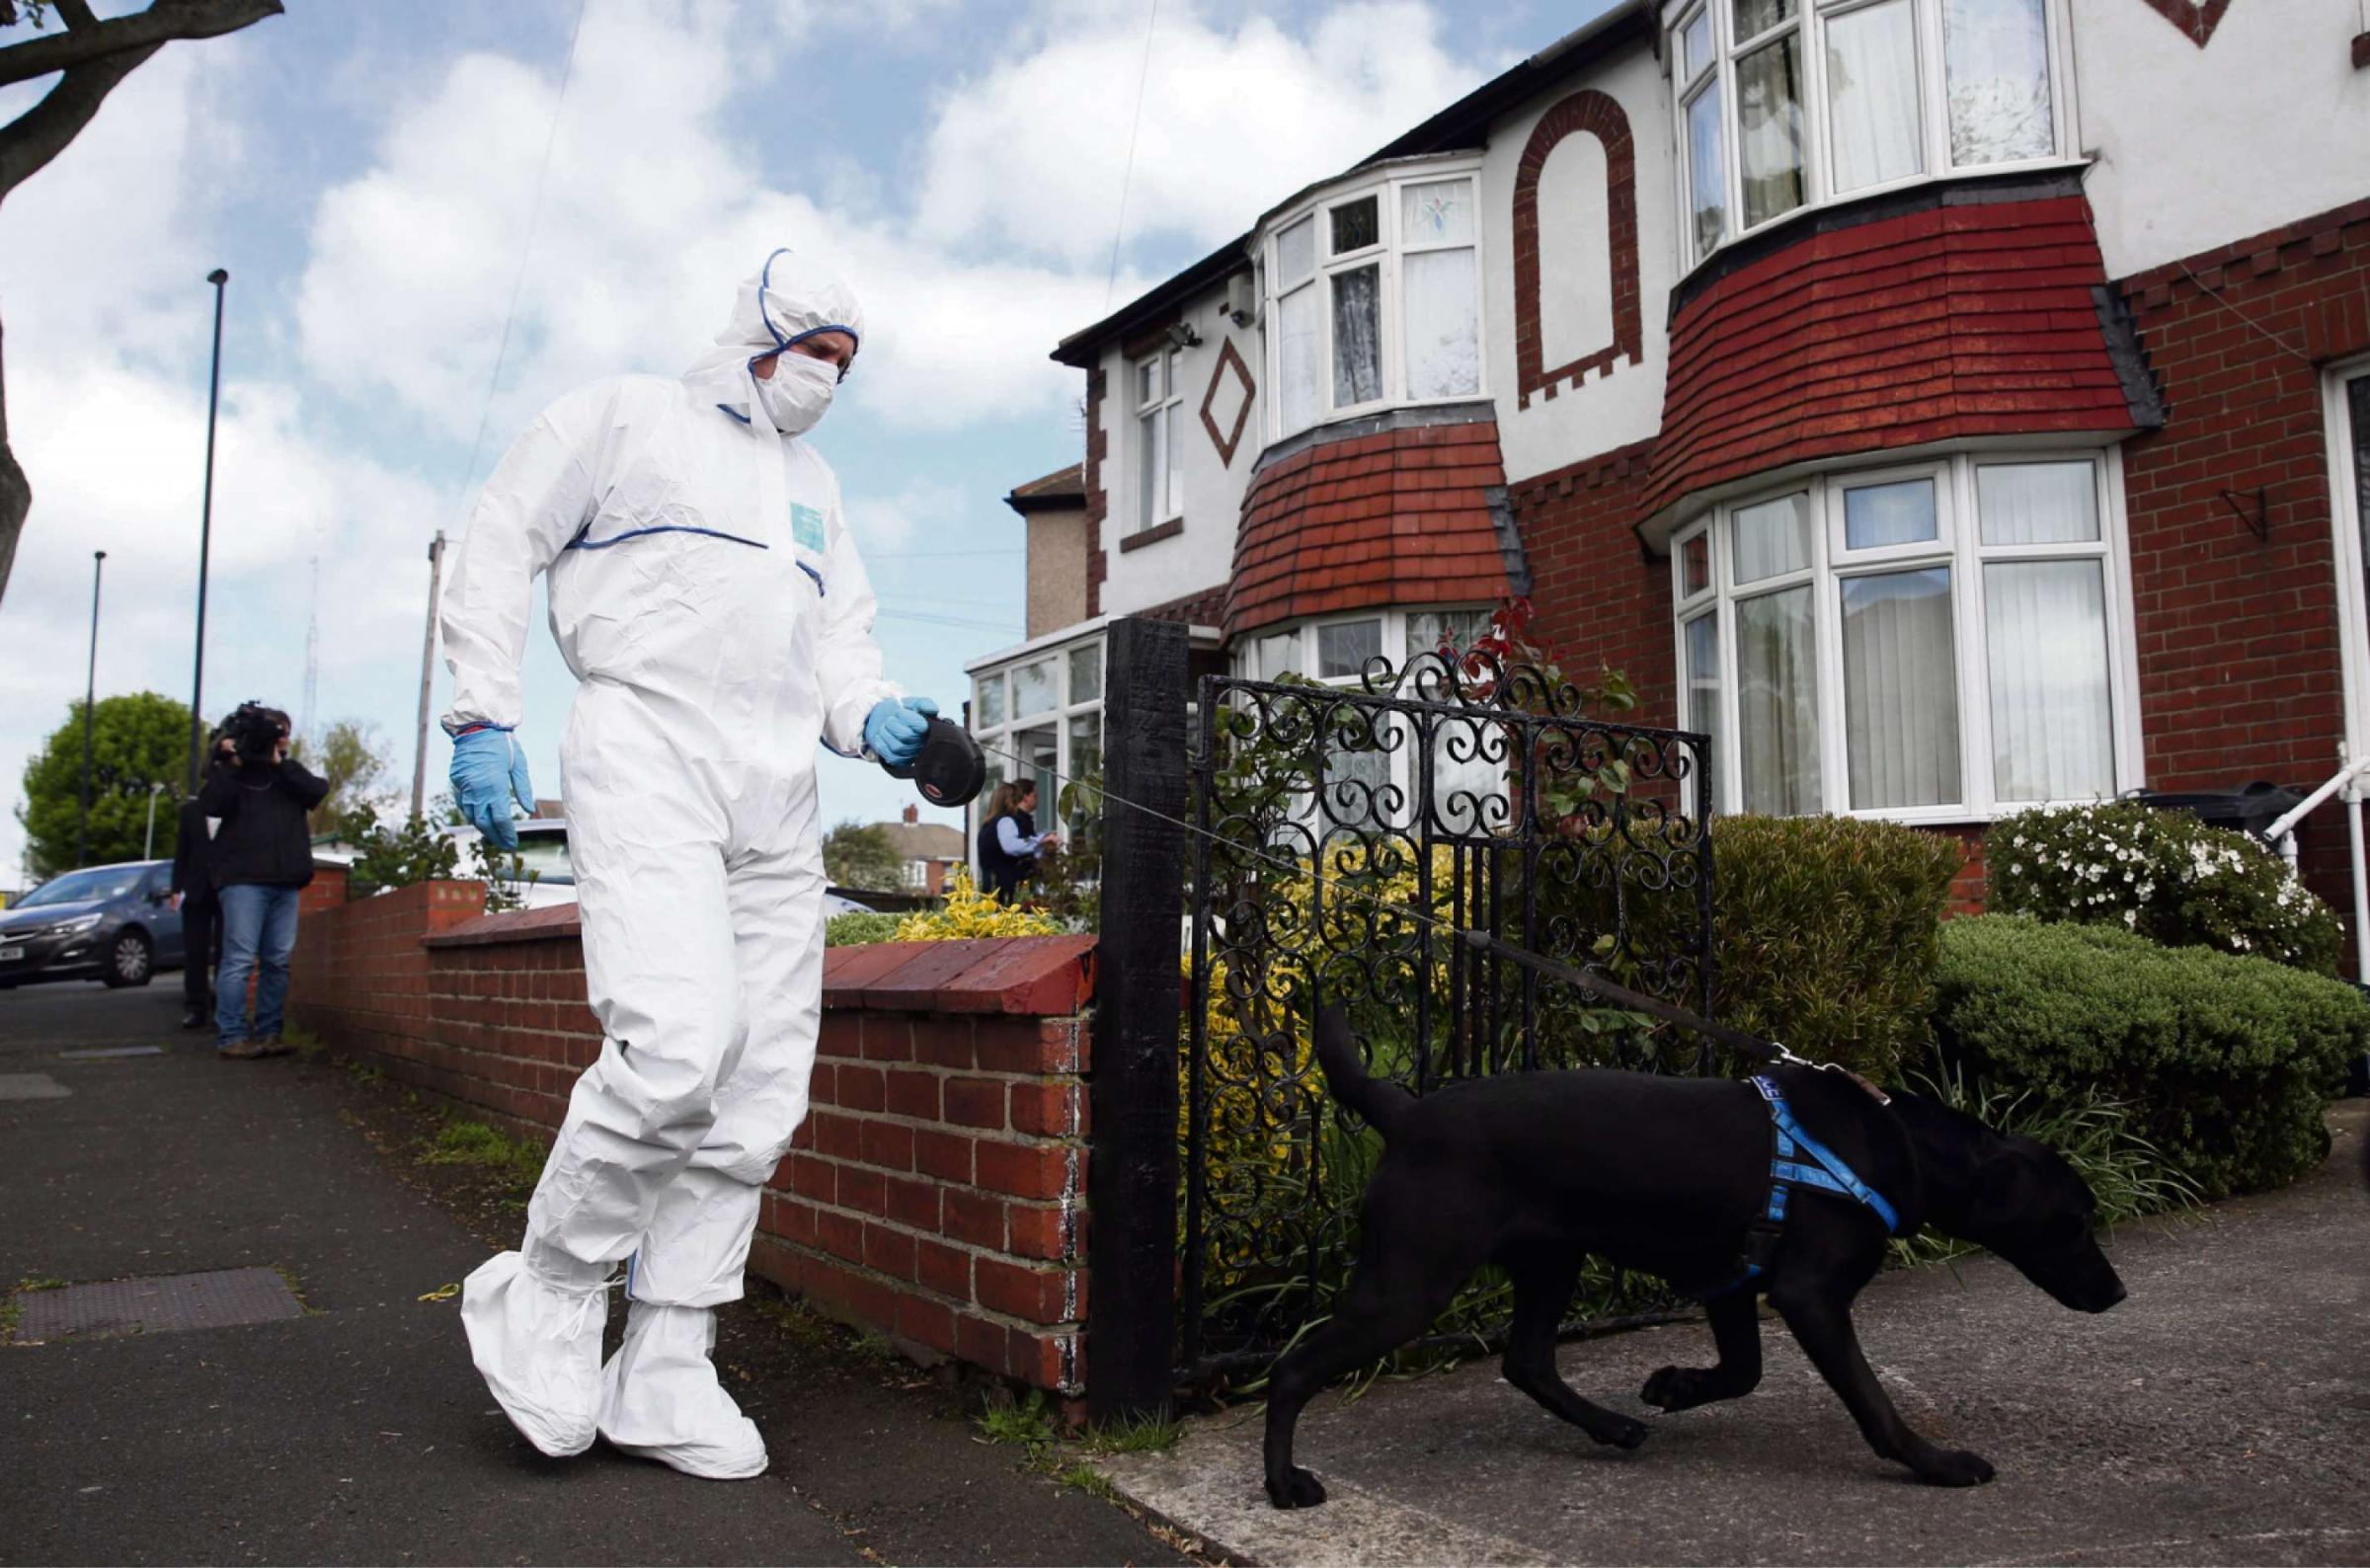 Police and dogs at the house in Hollywell Road, North Shields, the family home of Mike Snelling